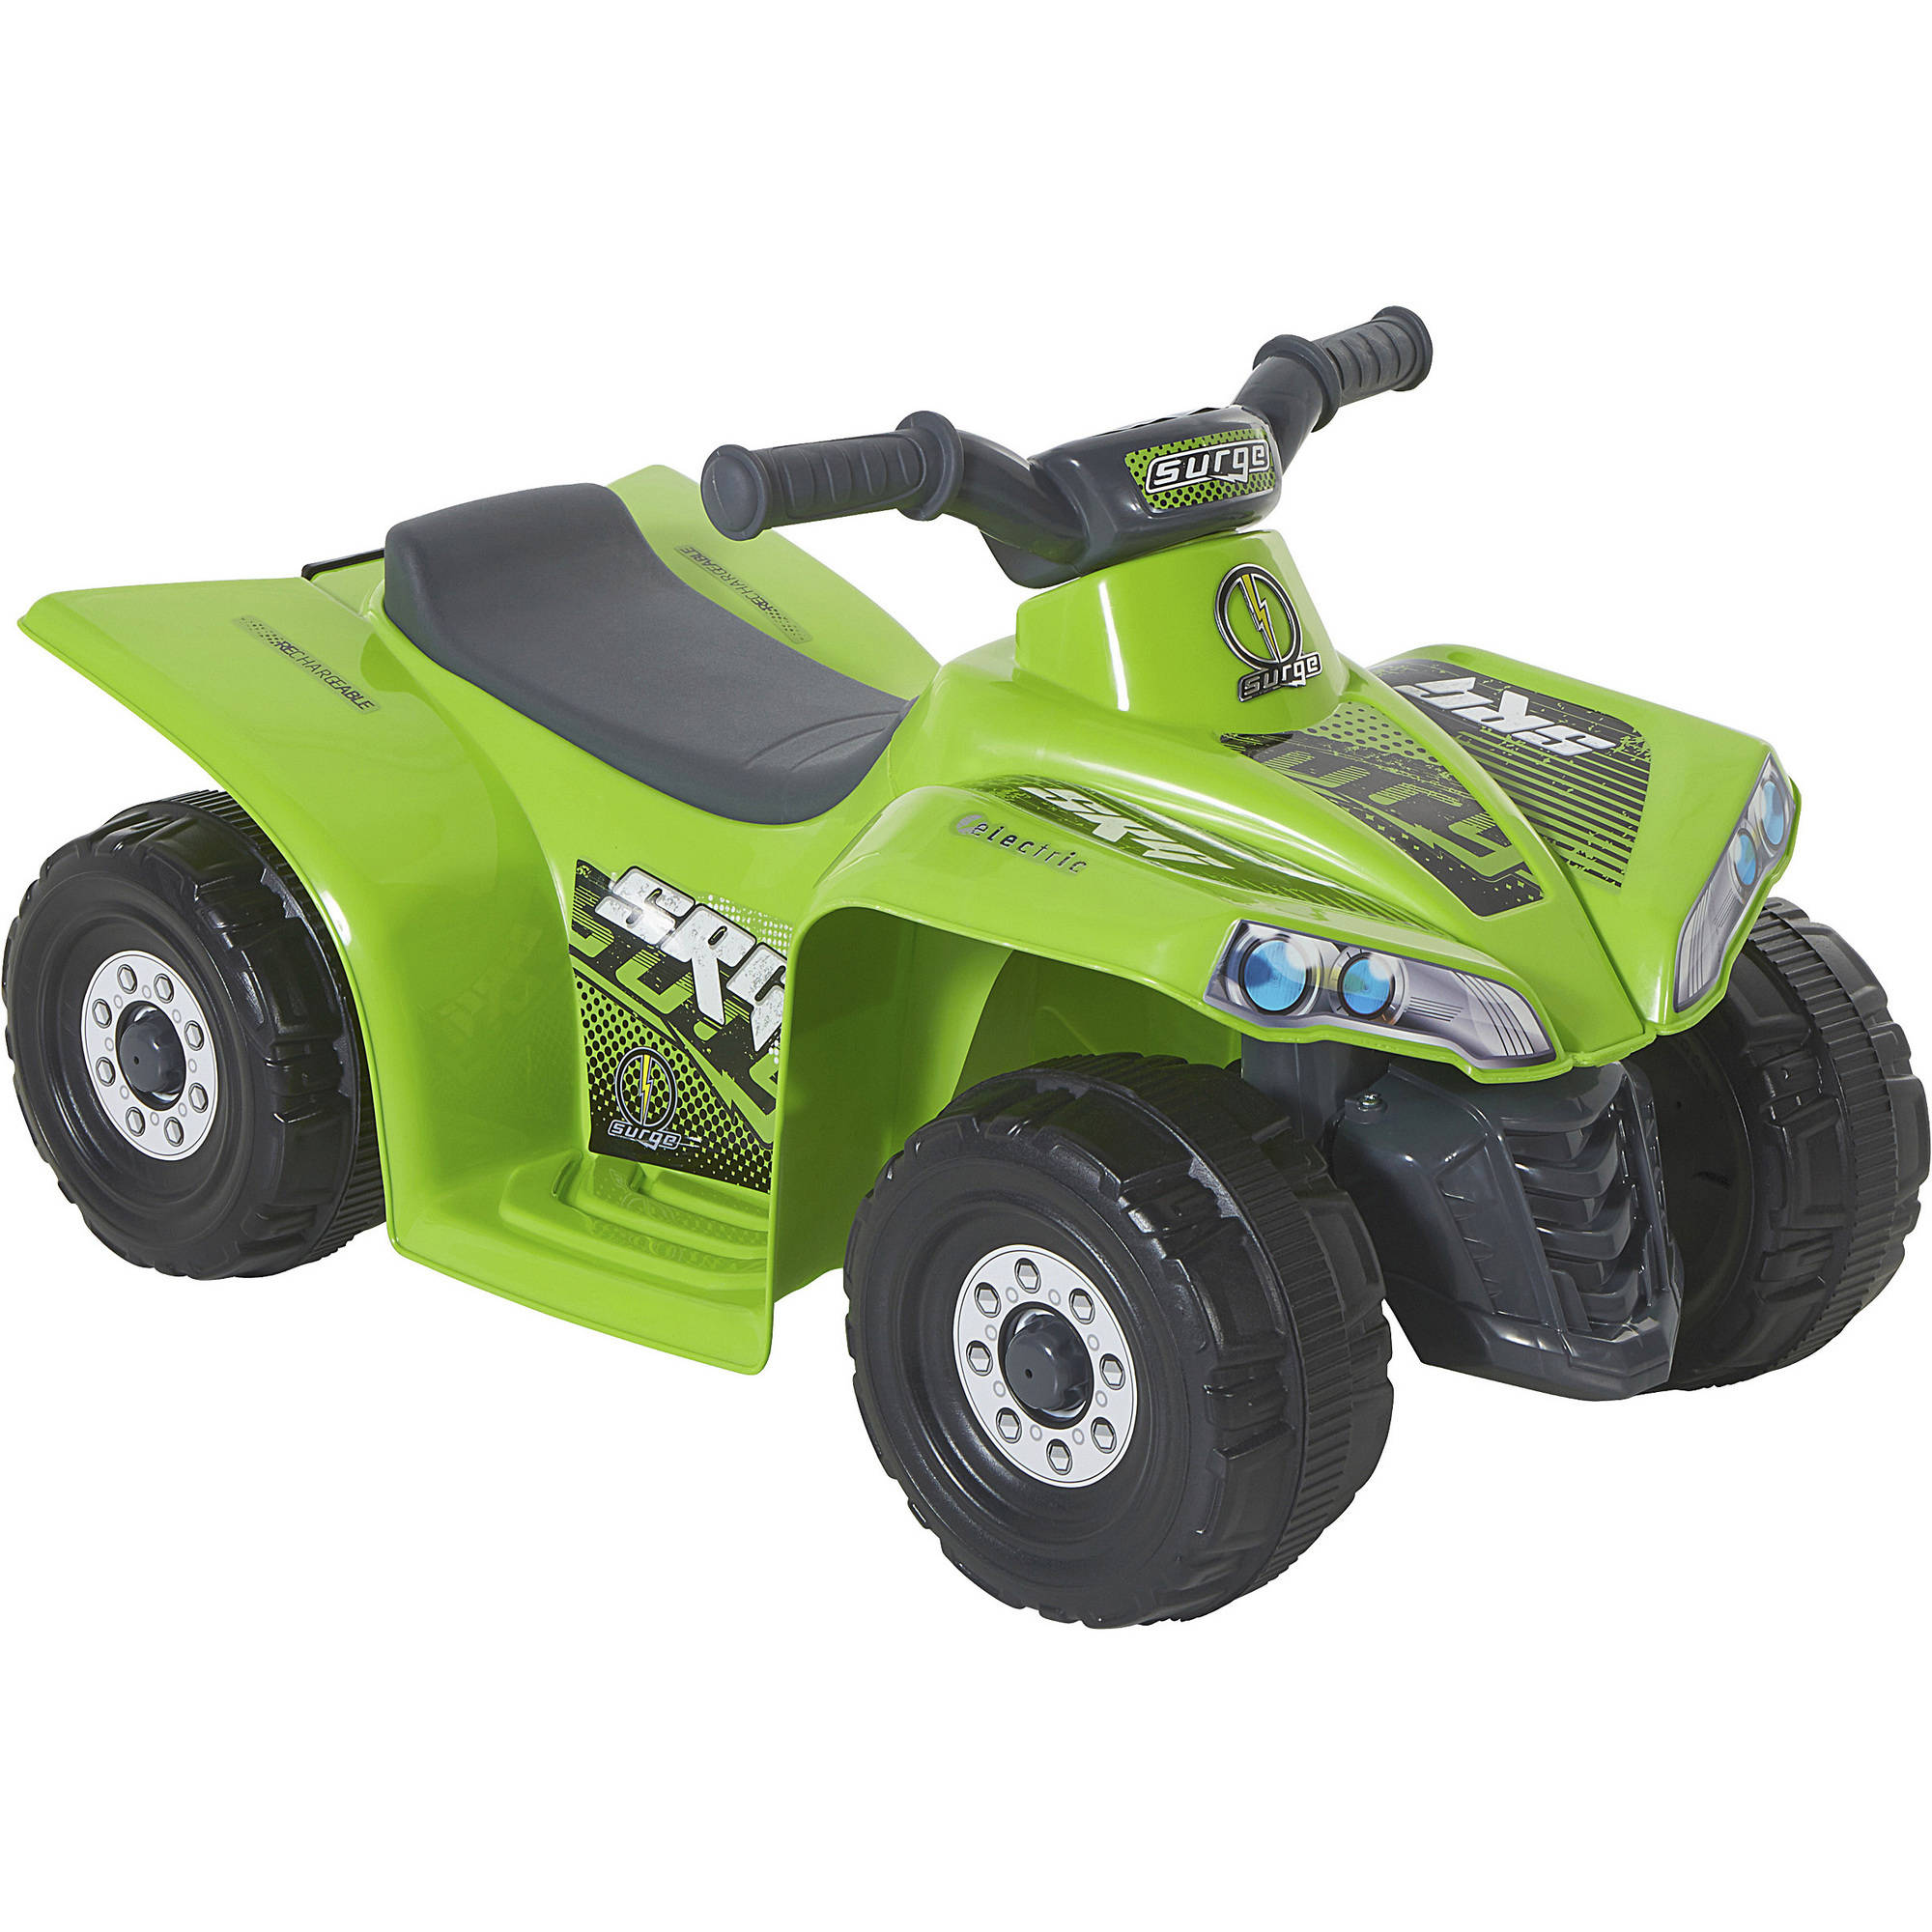 1021a2eae Kids Ride On Quad ATV Toddler Vehicle 6V Battery Powered Surge Graphics  Green